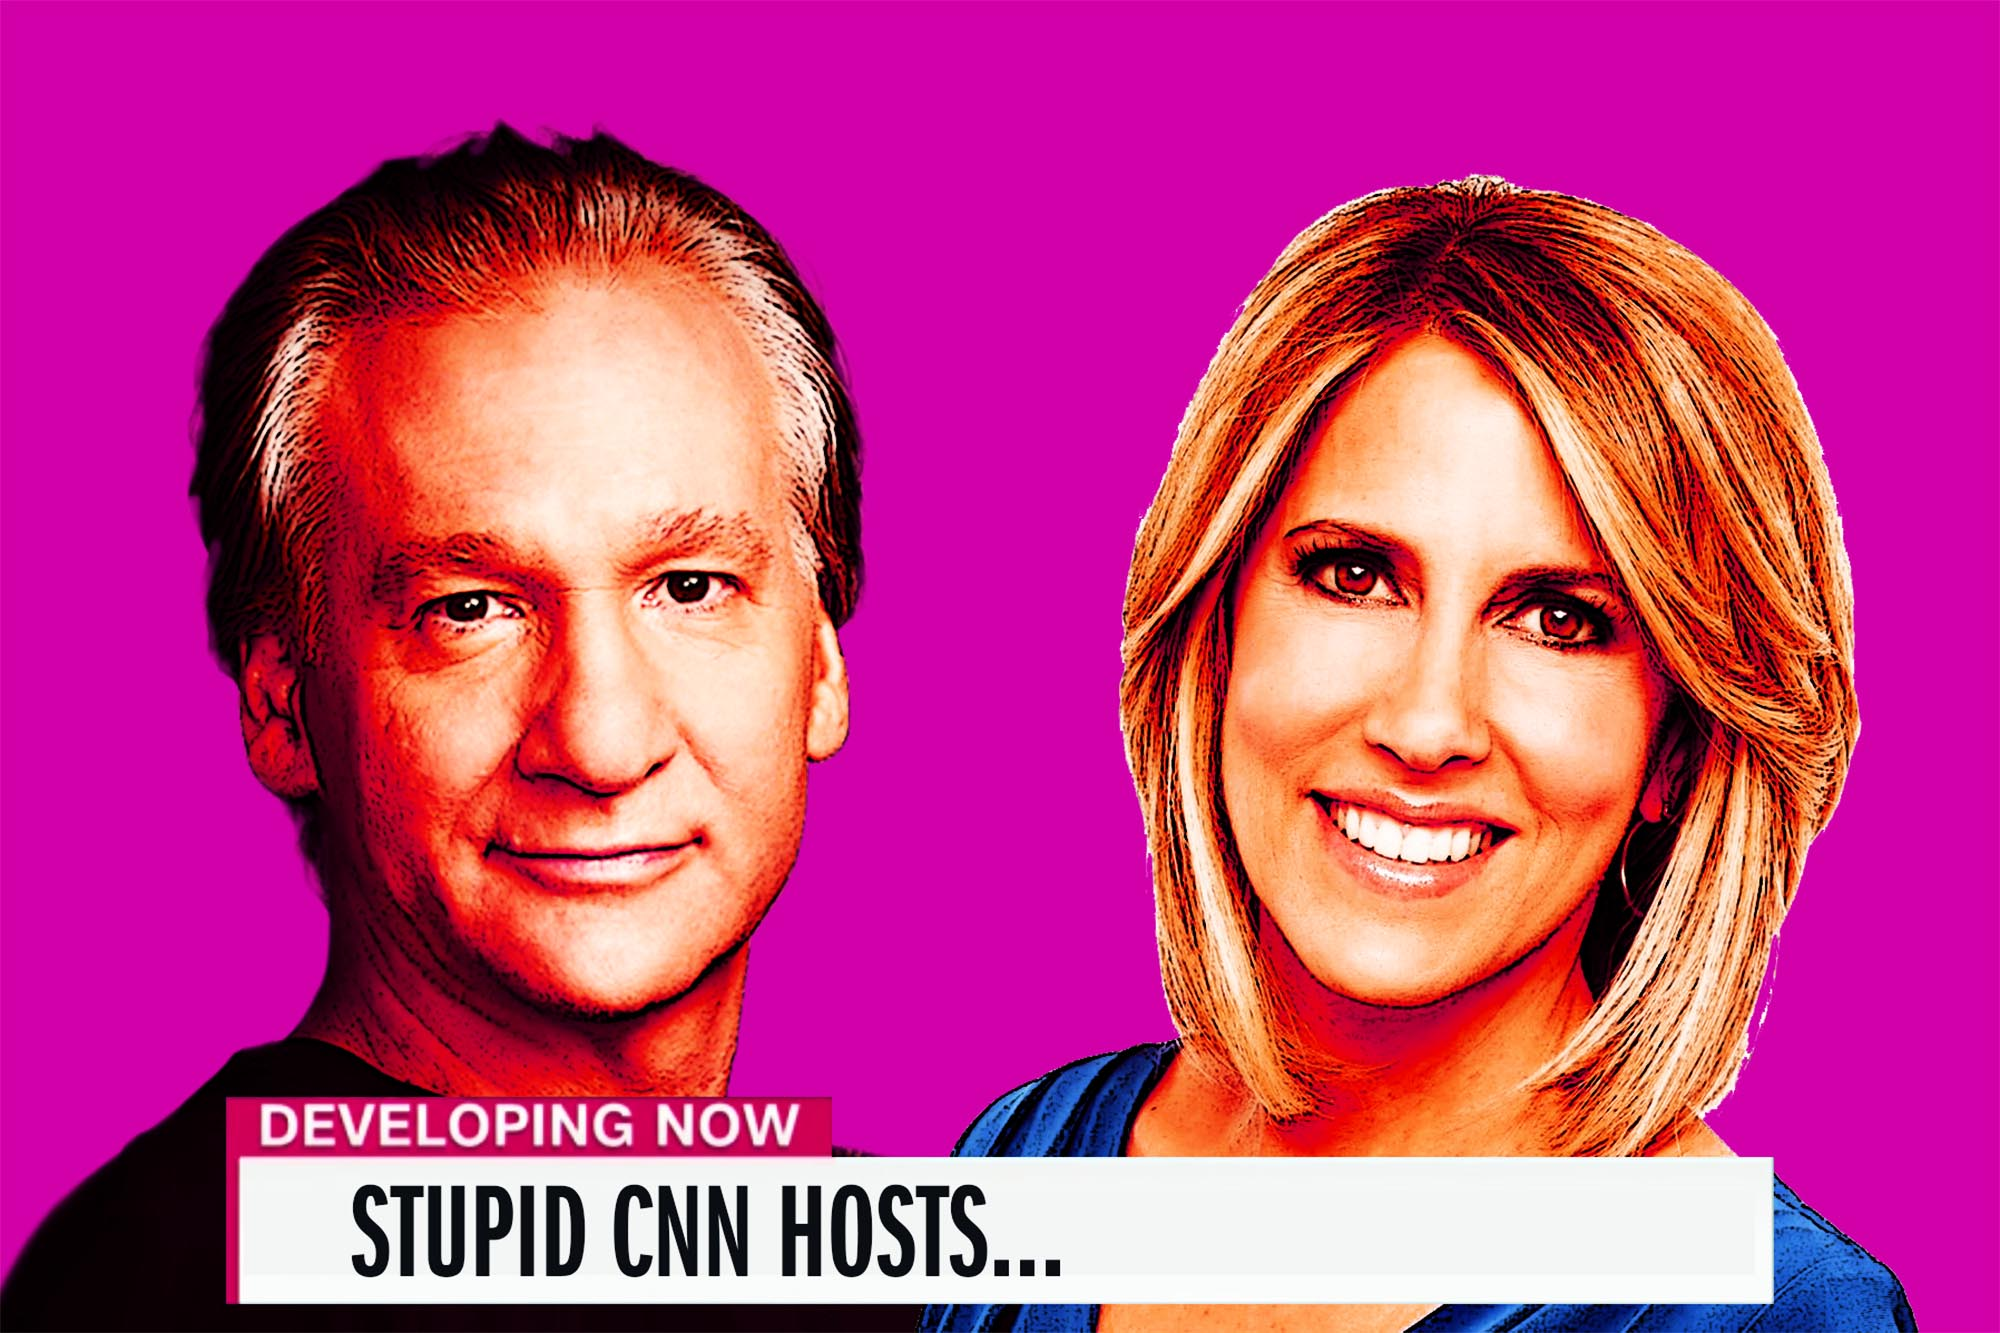 Top 4 Most Stupid CNN Hosts (my own opinion)